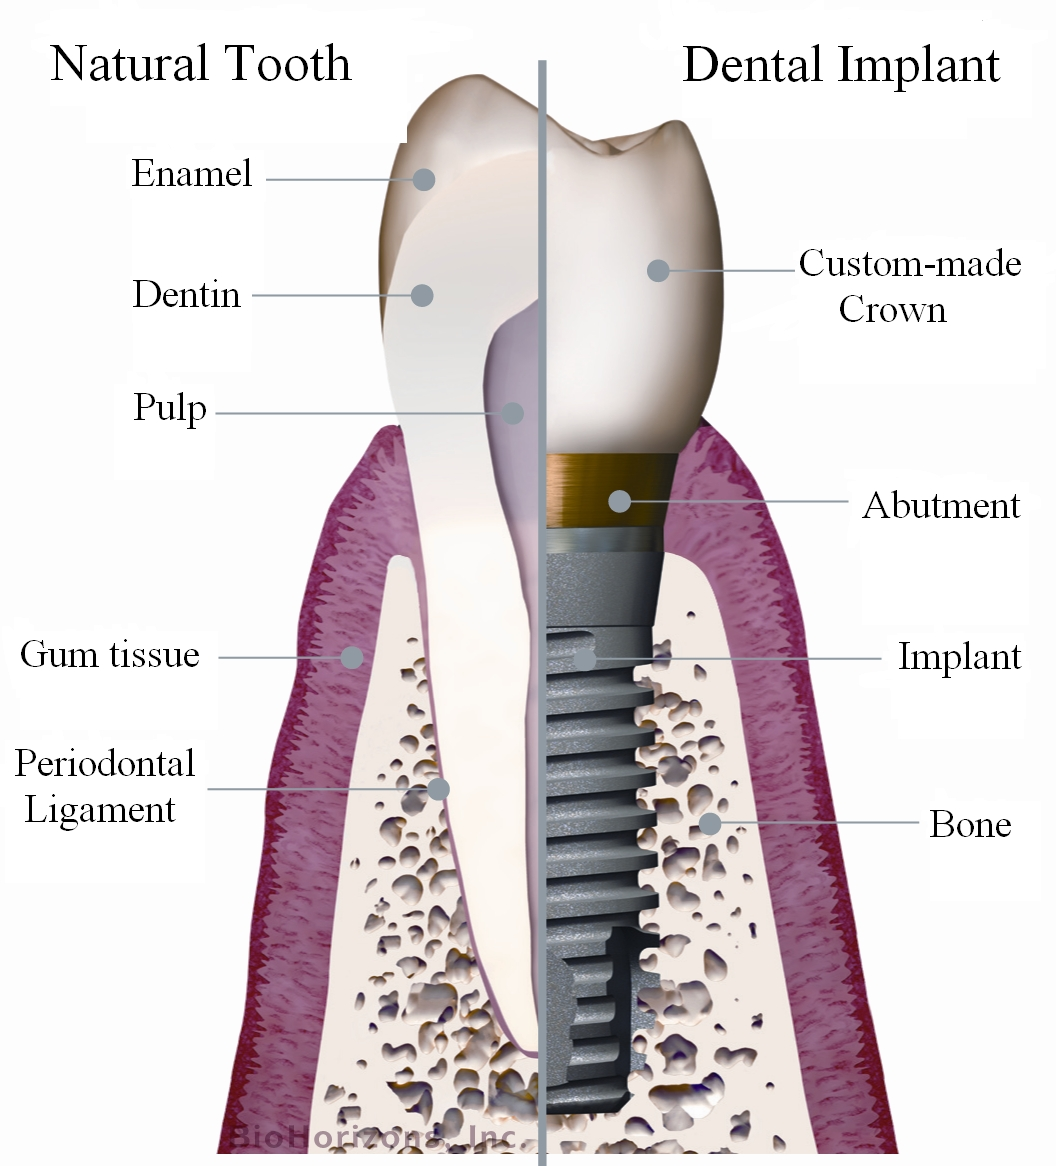 Implants- Part 1- Why are implants important?